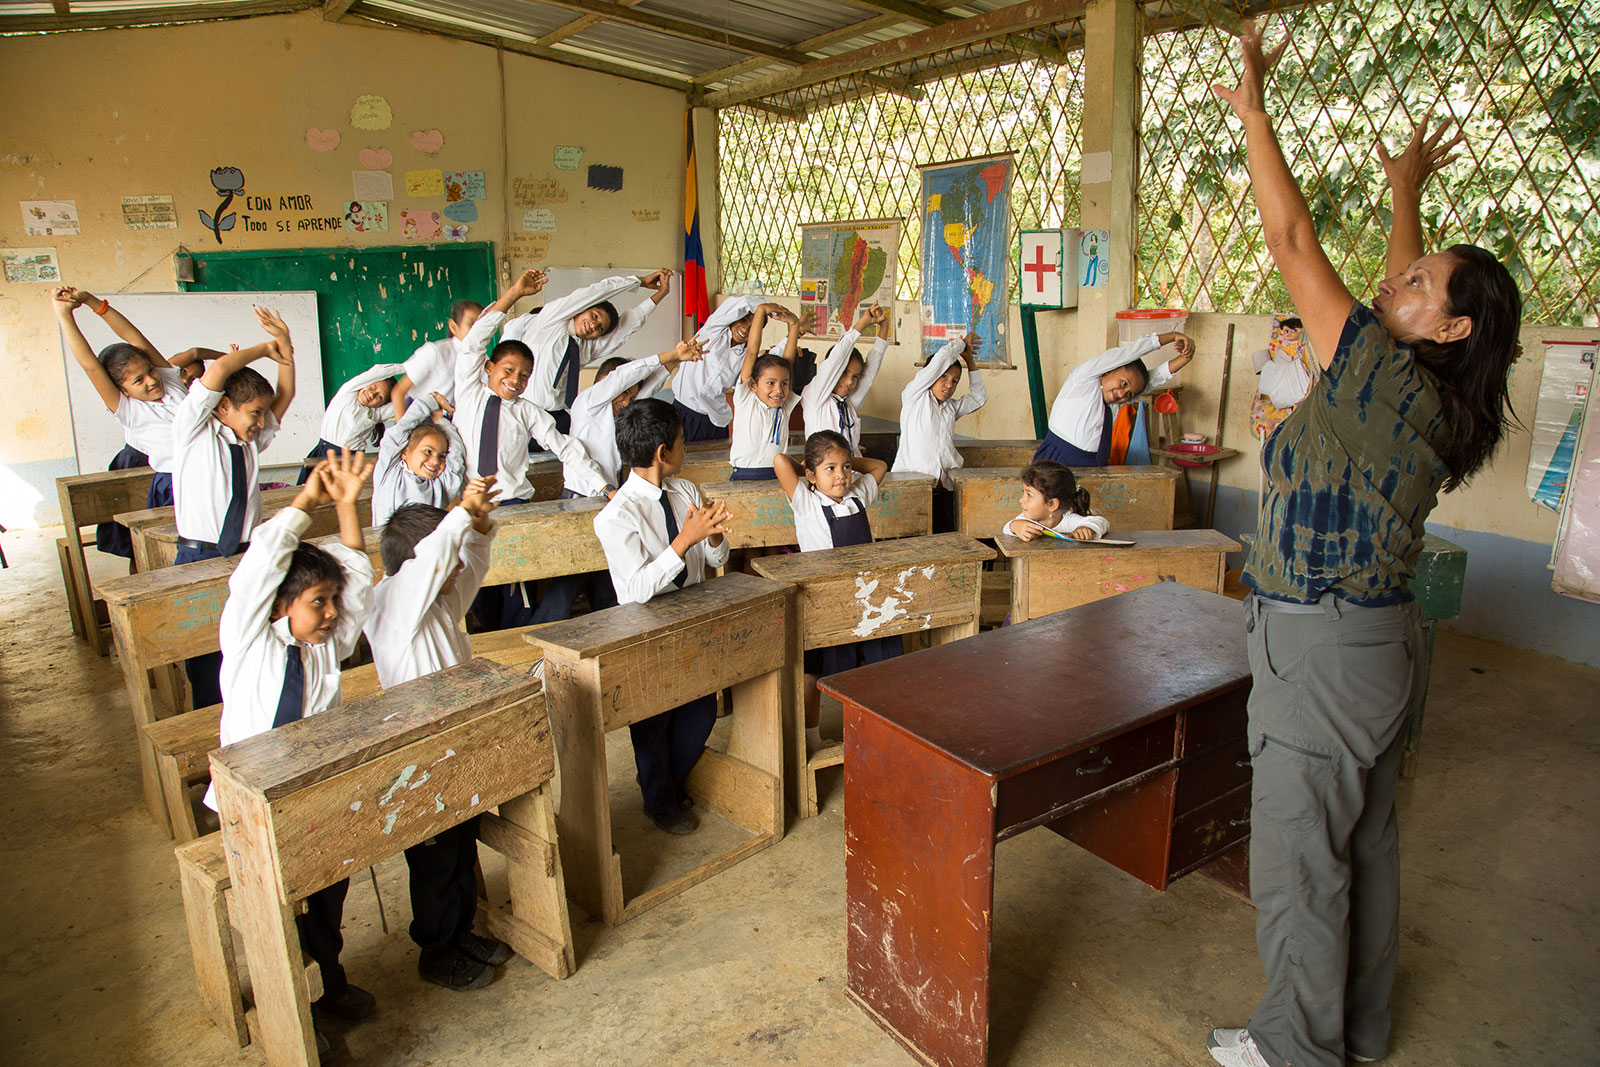 A woman instructs a group of young students to raise their hands in the air